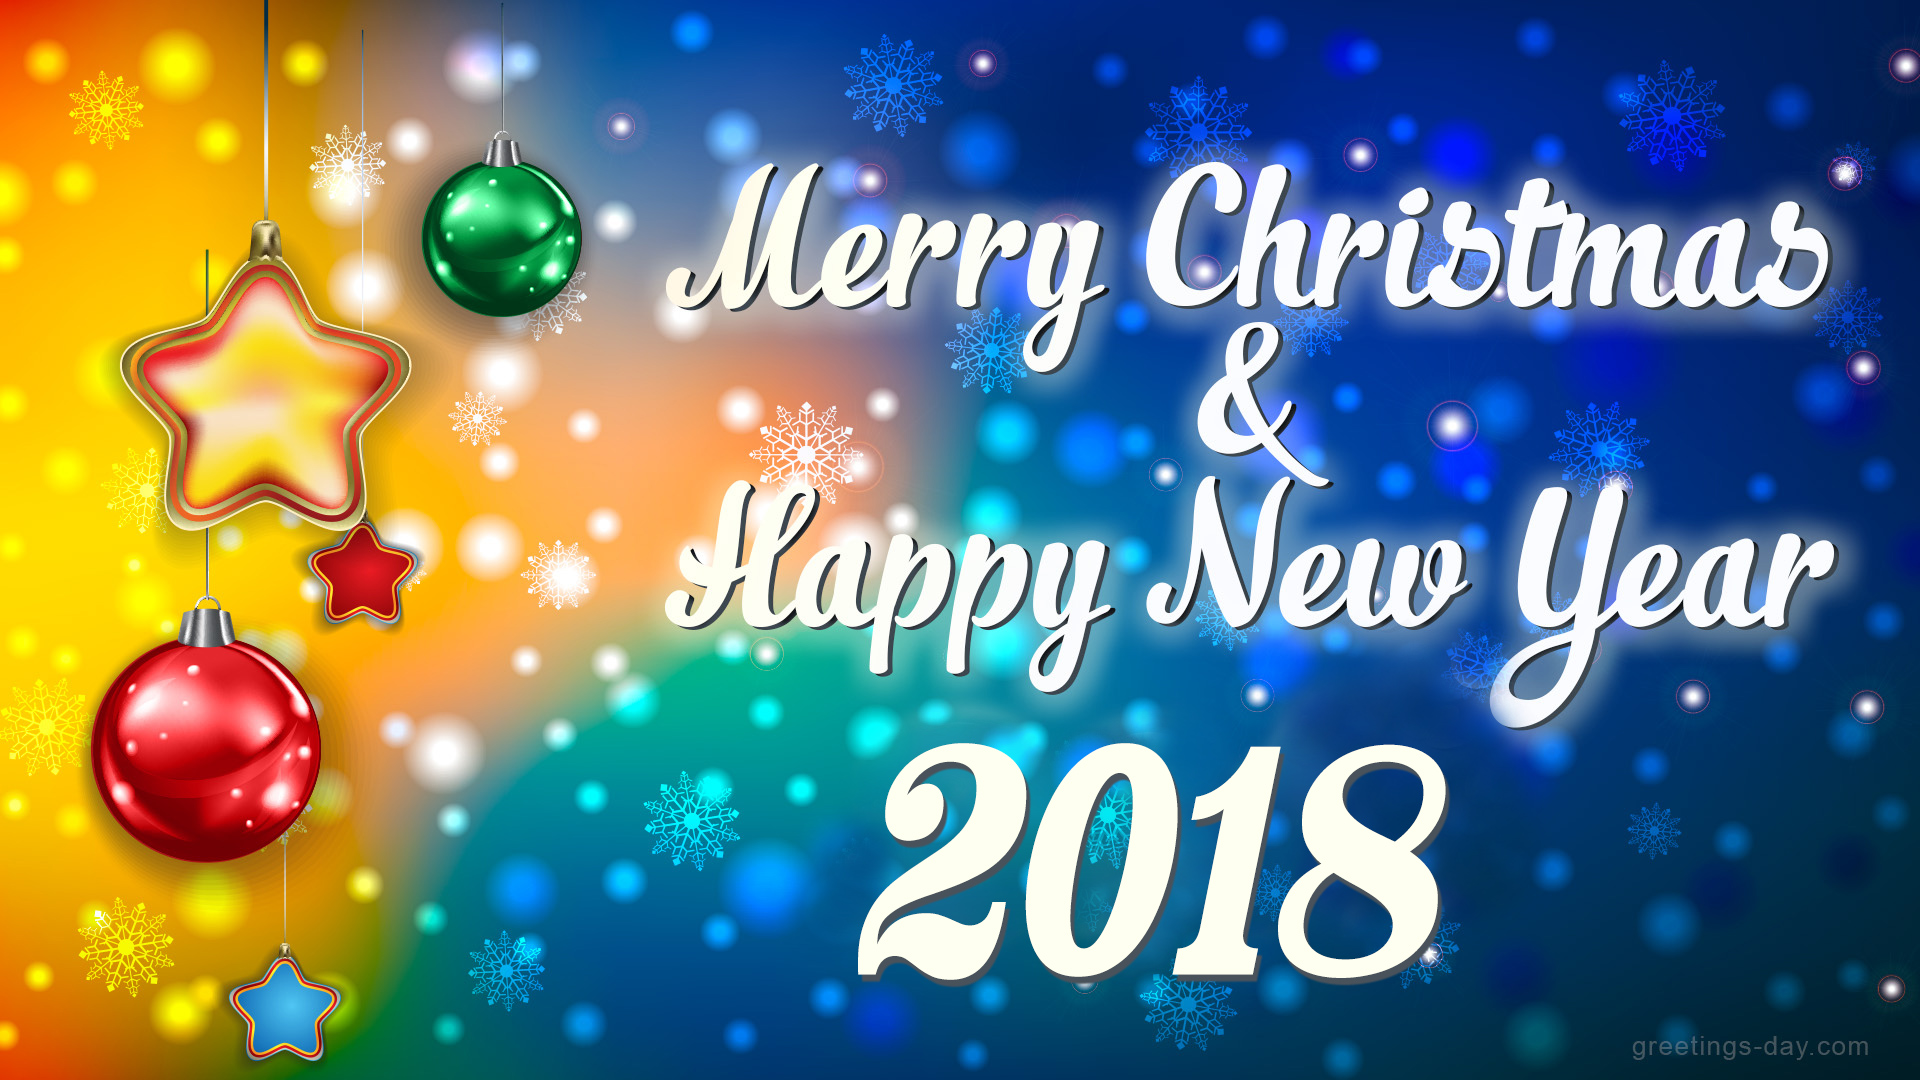 Christmas new year greeting cards pictures animated gifs christmas 2018 kristyandbryce Images